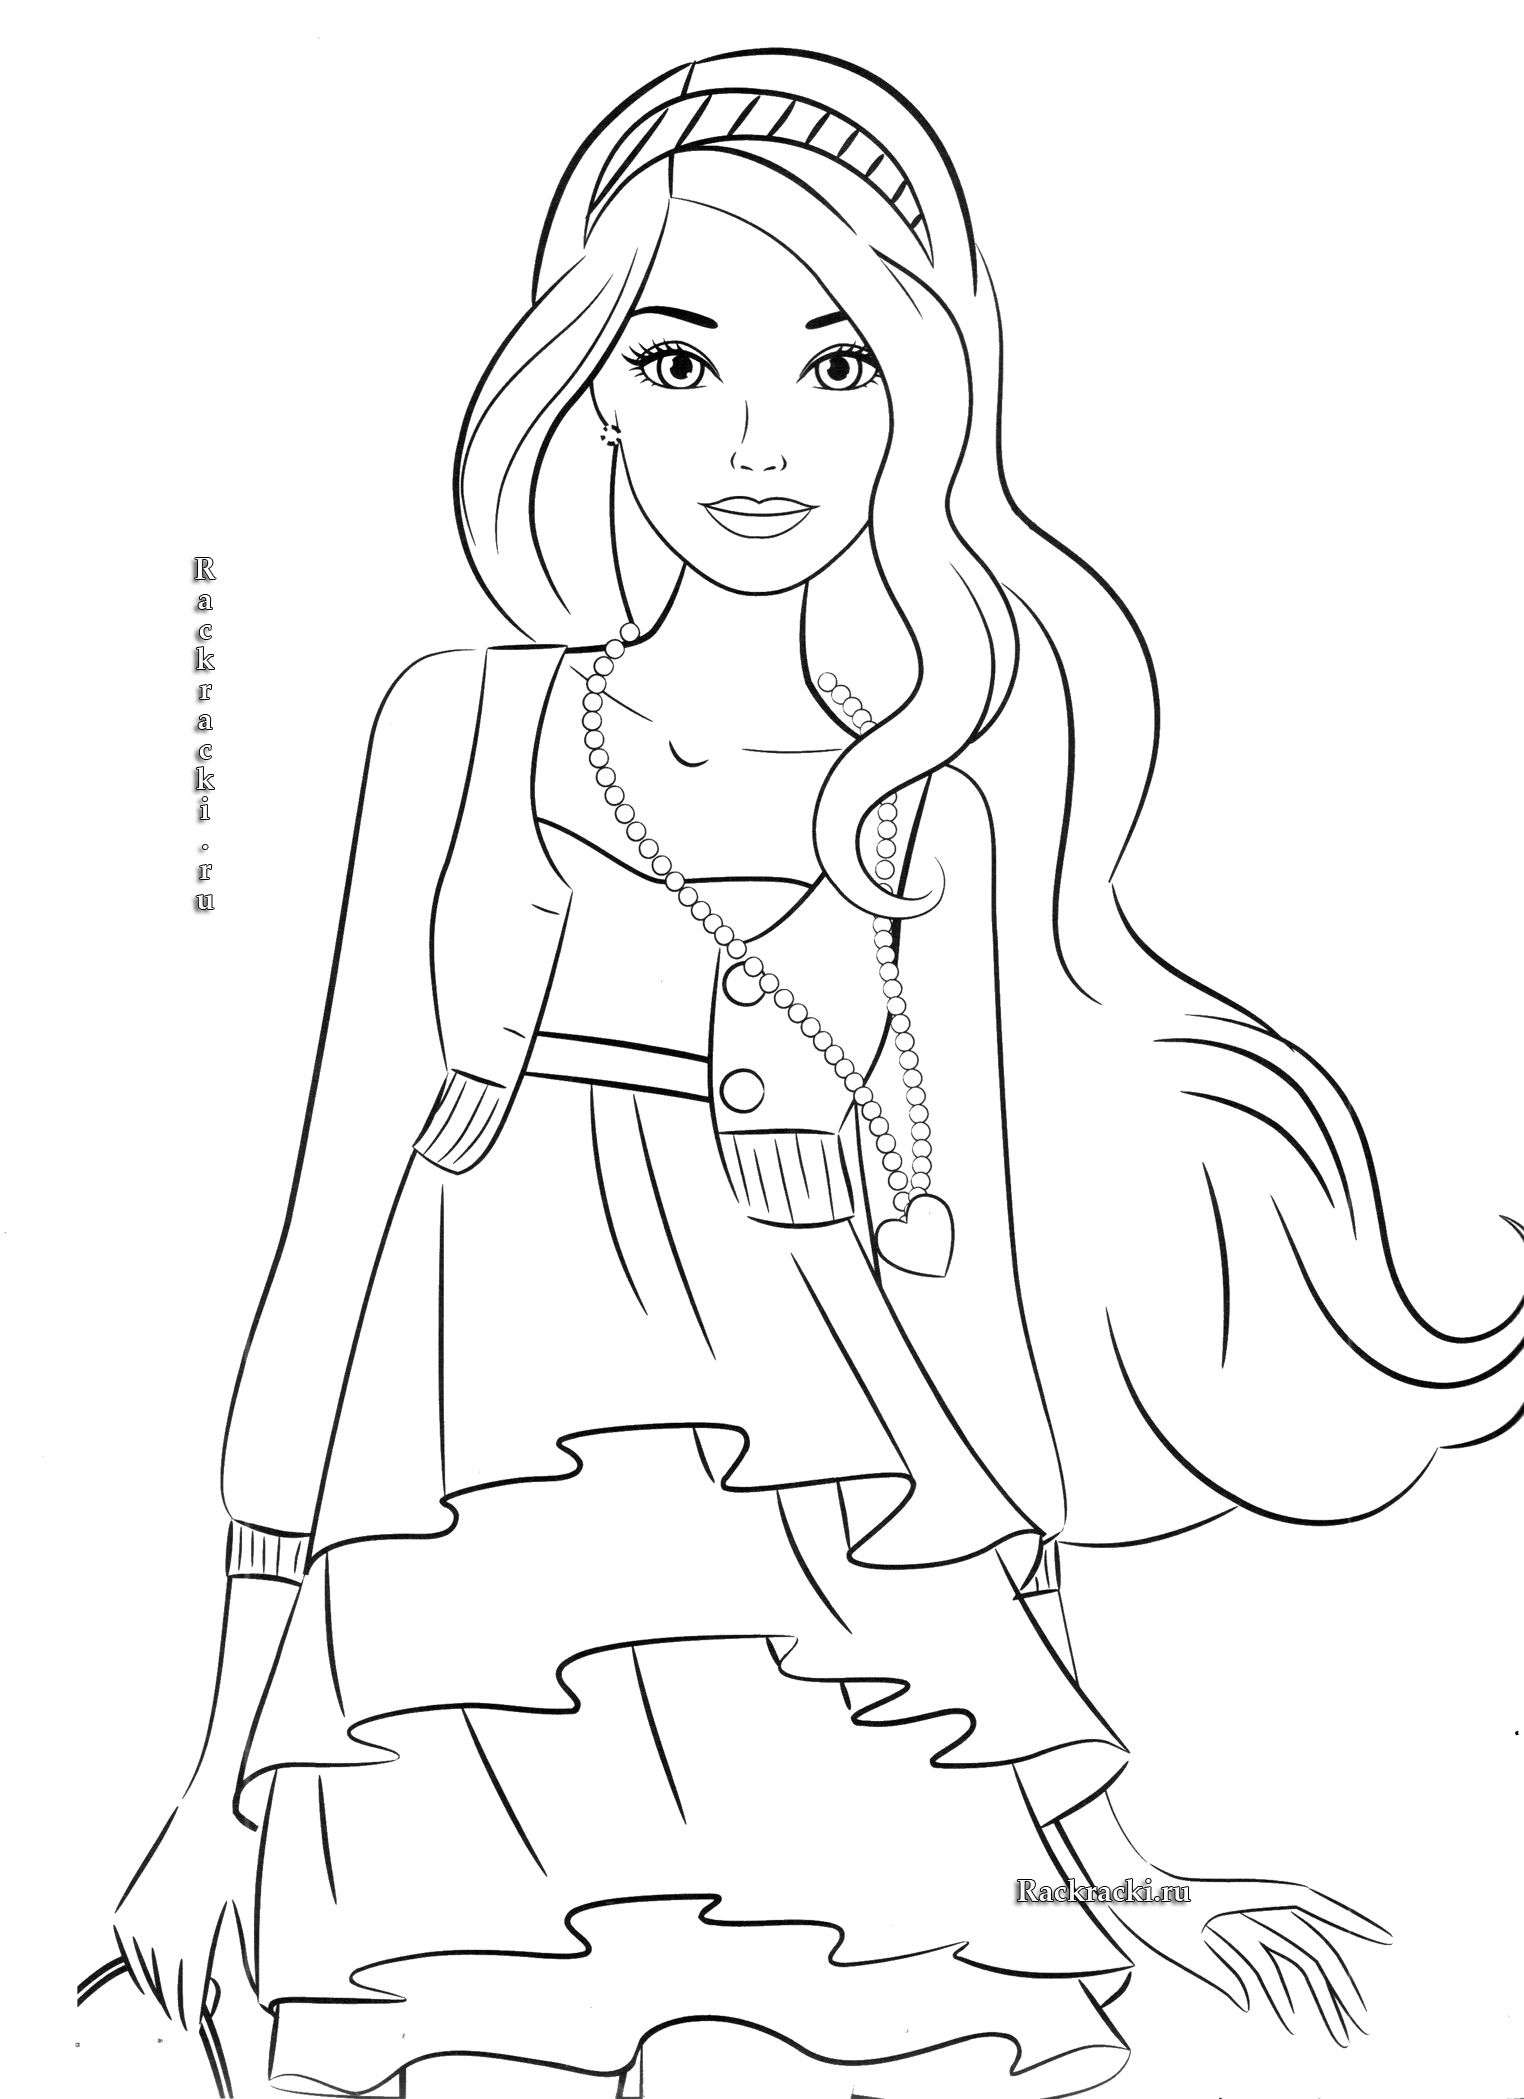 barbie coloring pages on coloring book info | barbie принцесса раскраска | Color - Hair | Barbie ...